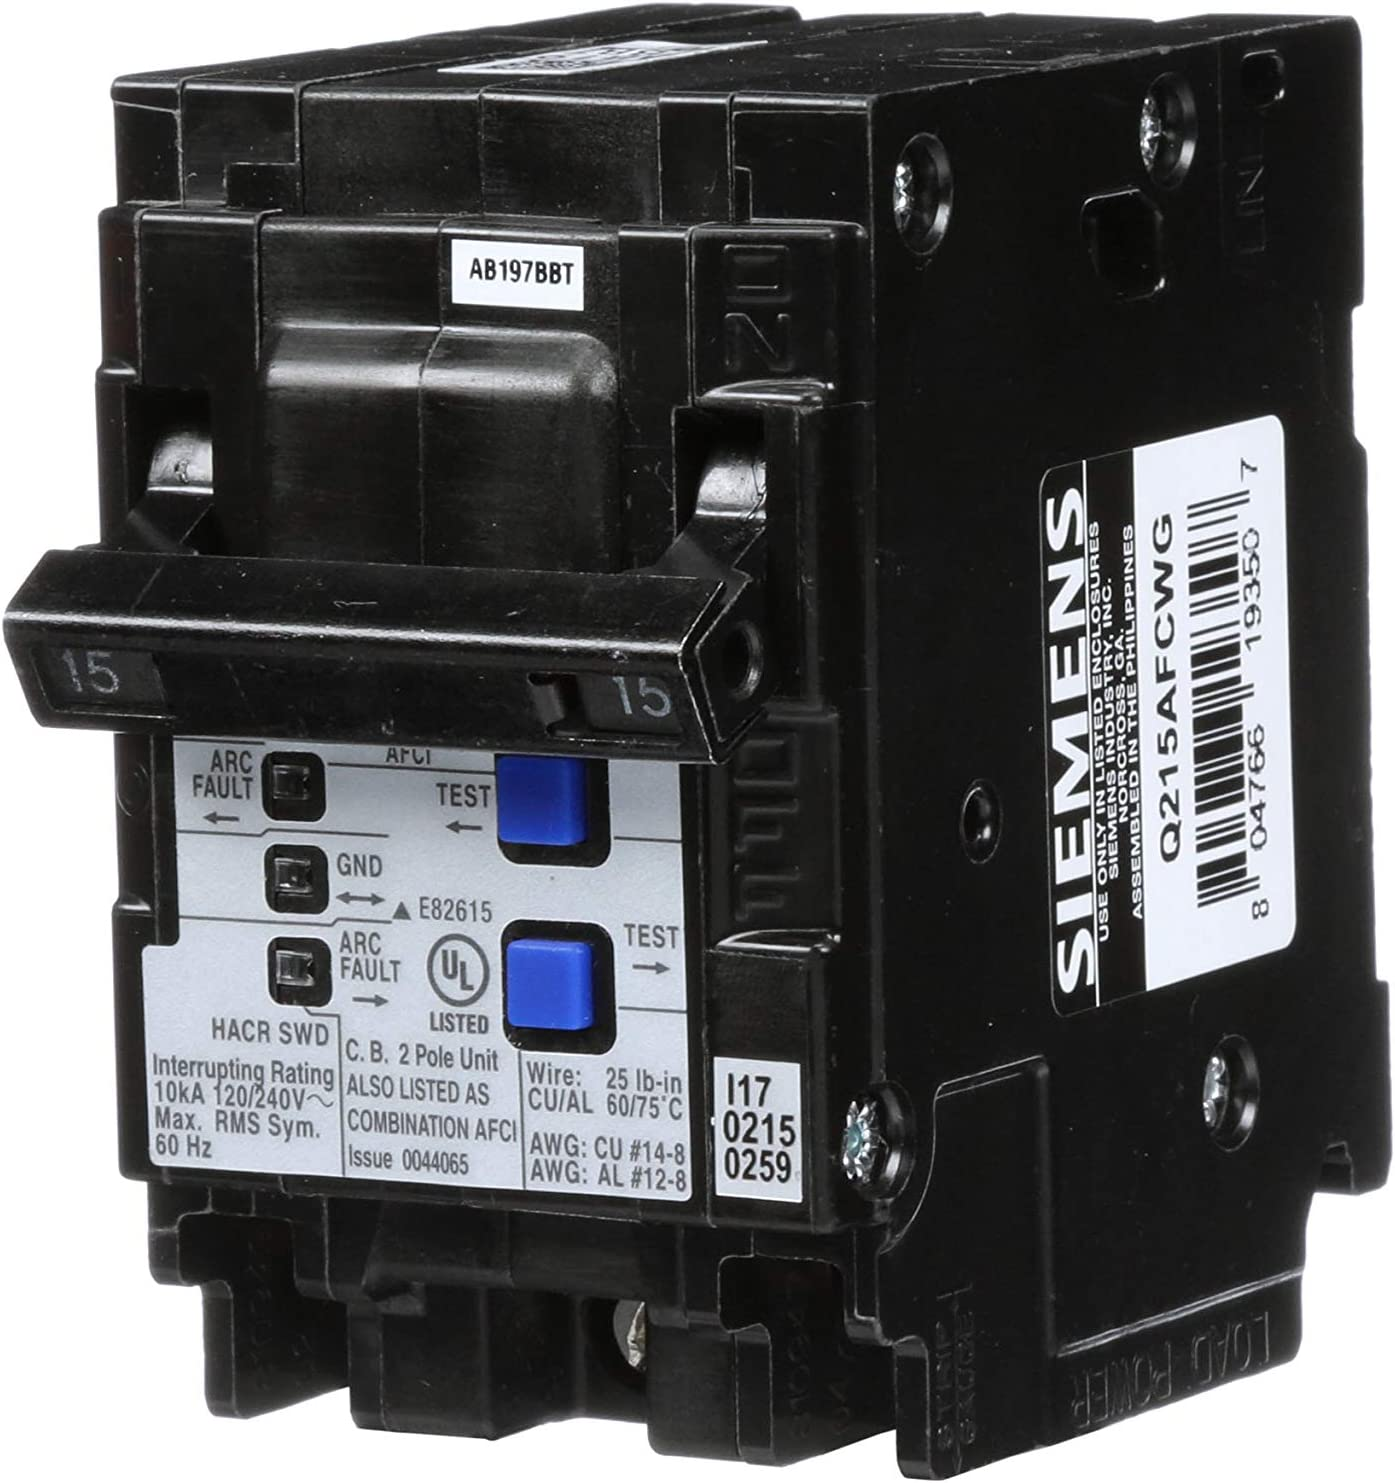 Aintier Ignition Control Module Compatible with Ford Jeep Lincoln Mercury 1975-1987 Fits for part number LX203 6H1012 DY184 D6AB12A199A1B